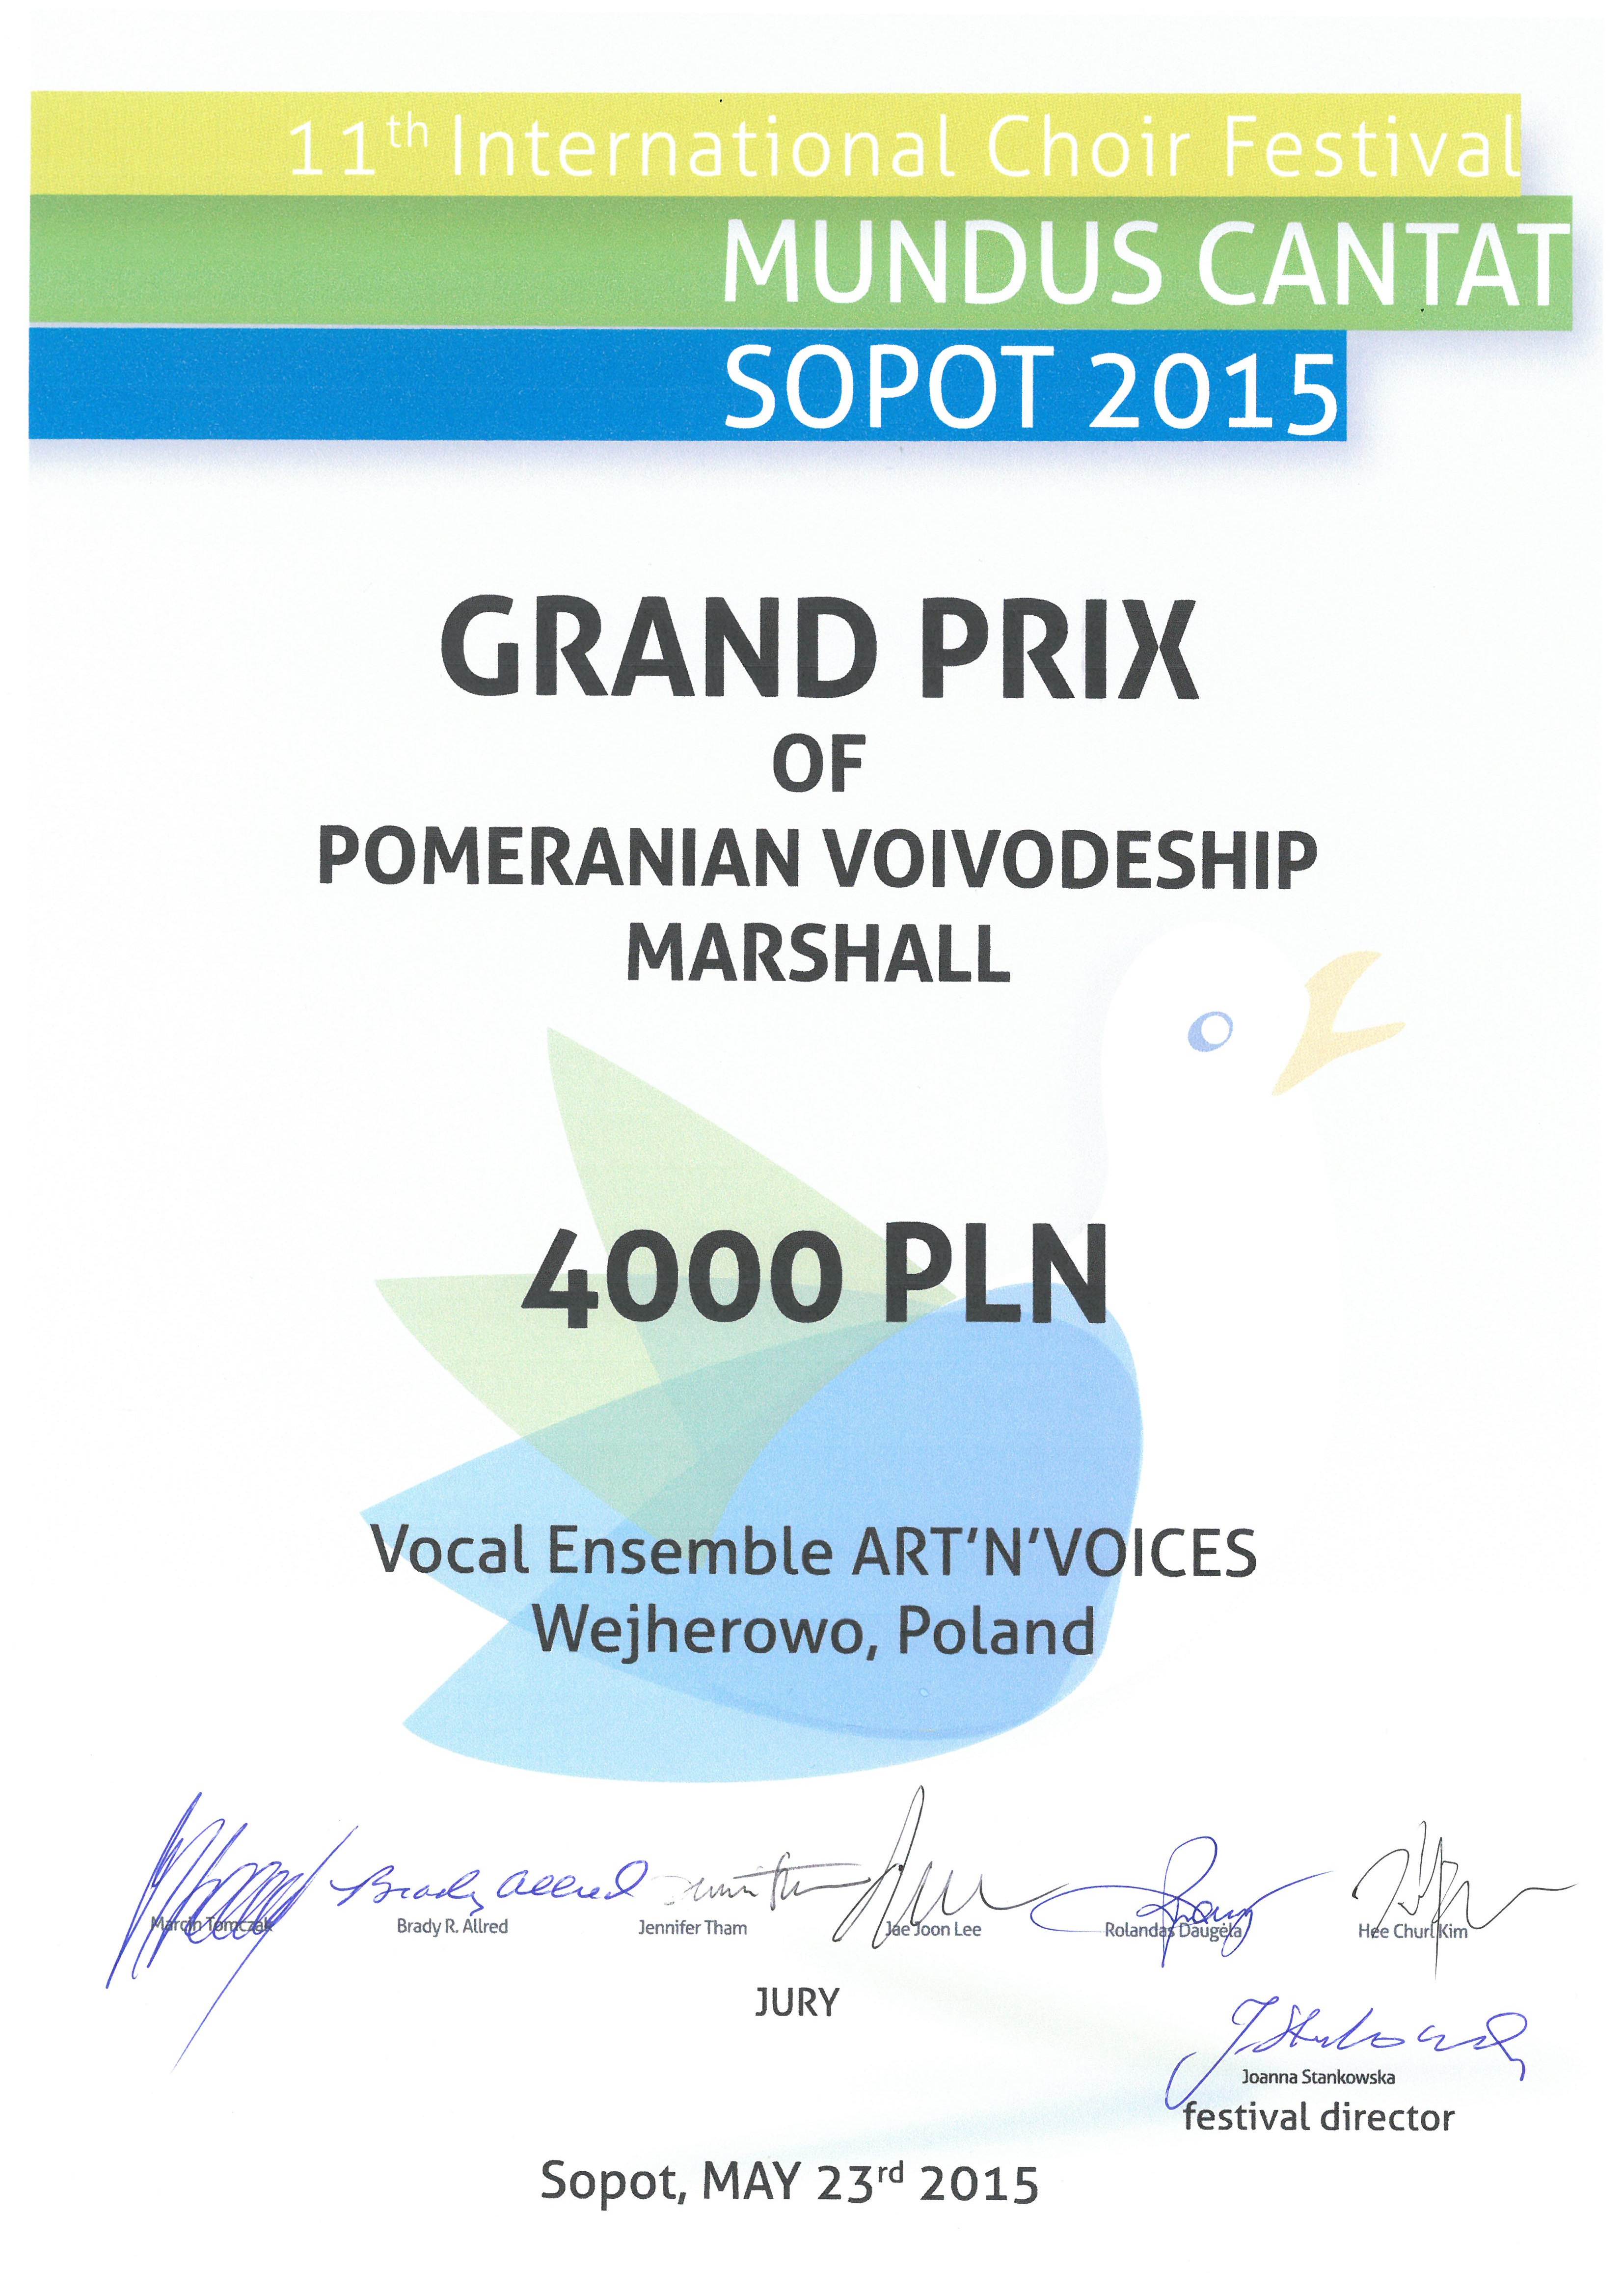 Grand Prix_Art'n'Voices_Mundus Cantat_2015